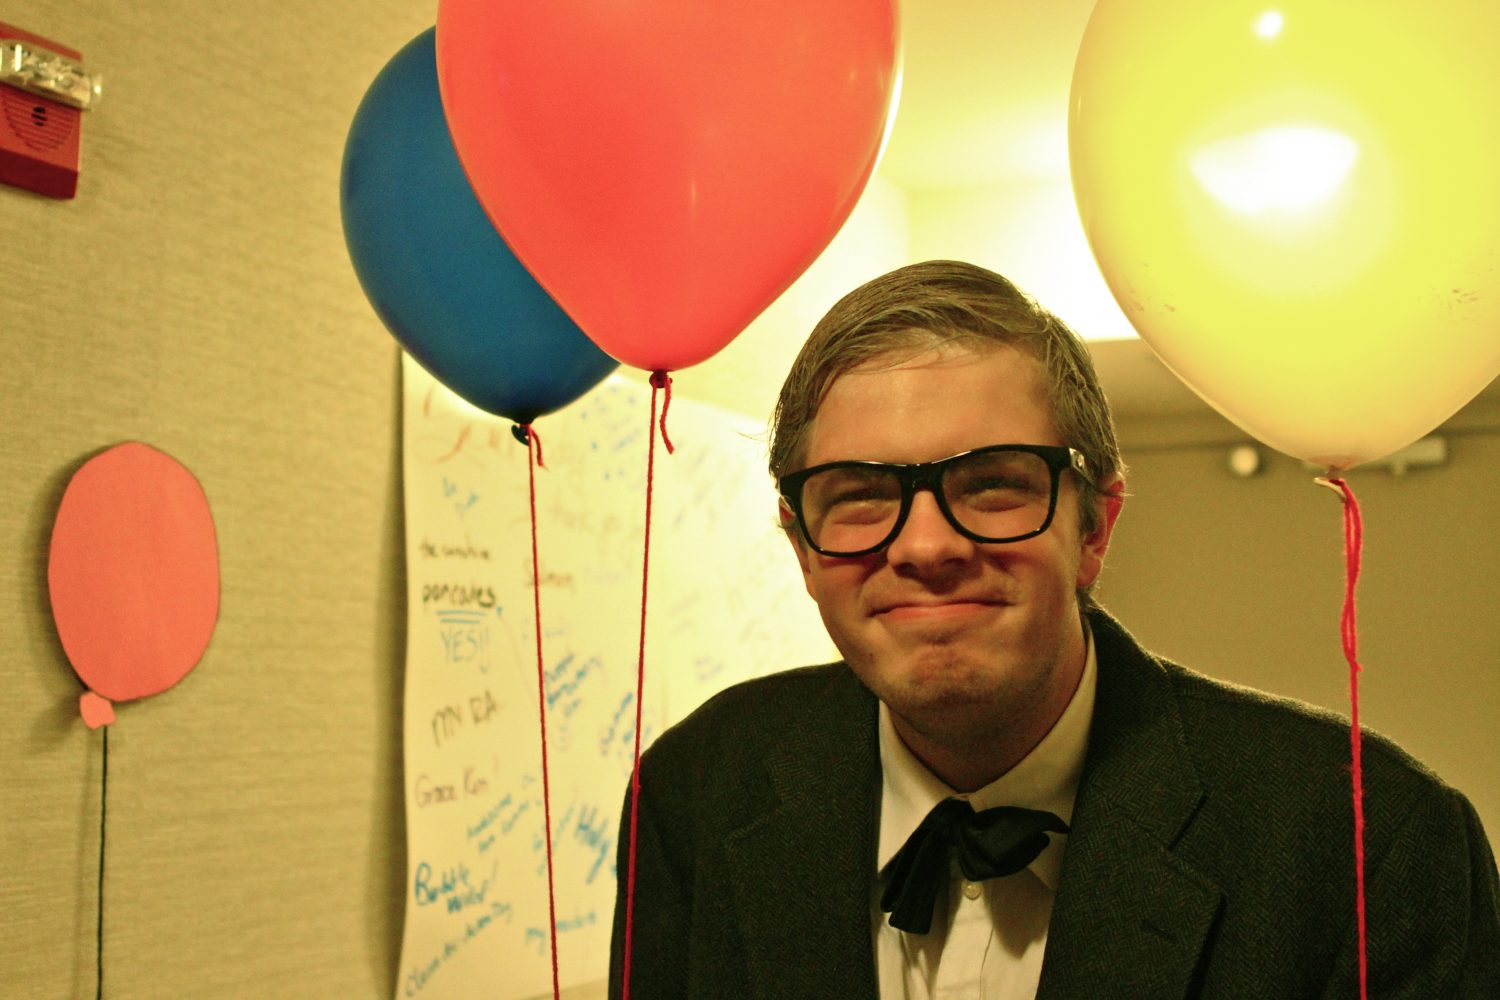 Junior Chess Van Wyk dressed up as a character from Up for Light in the Night. Photo by Ryan Hagerman